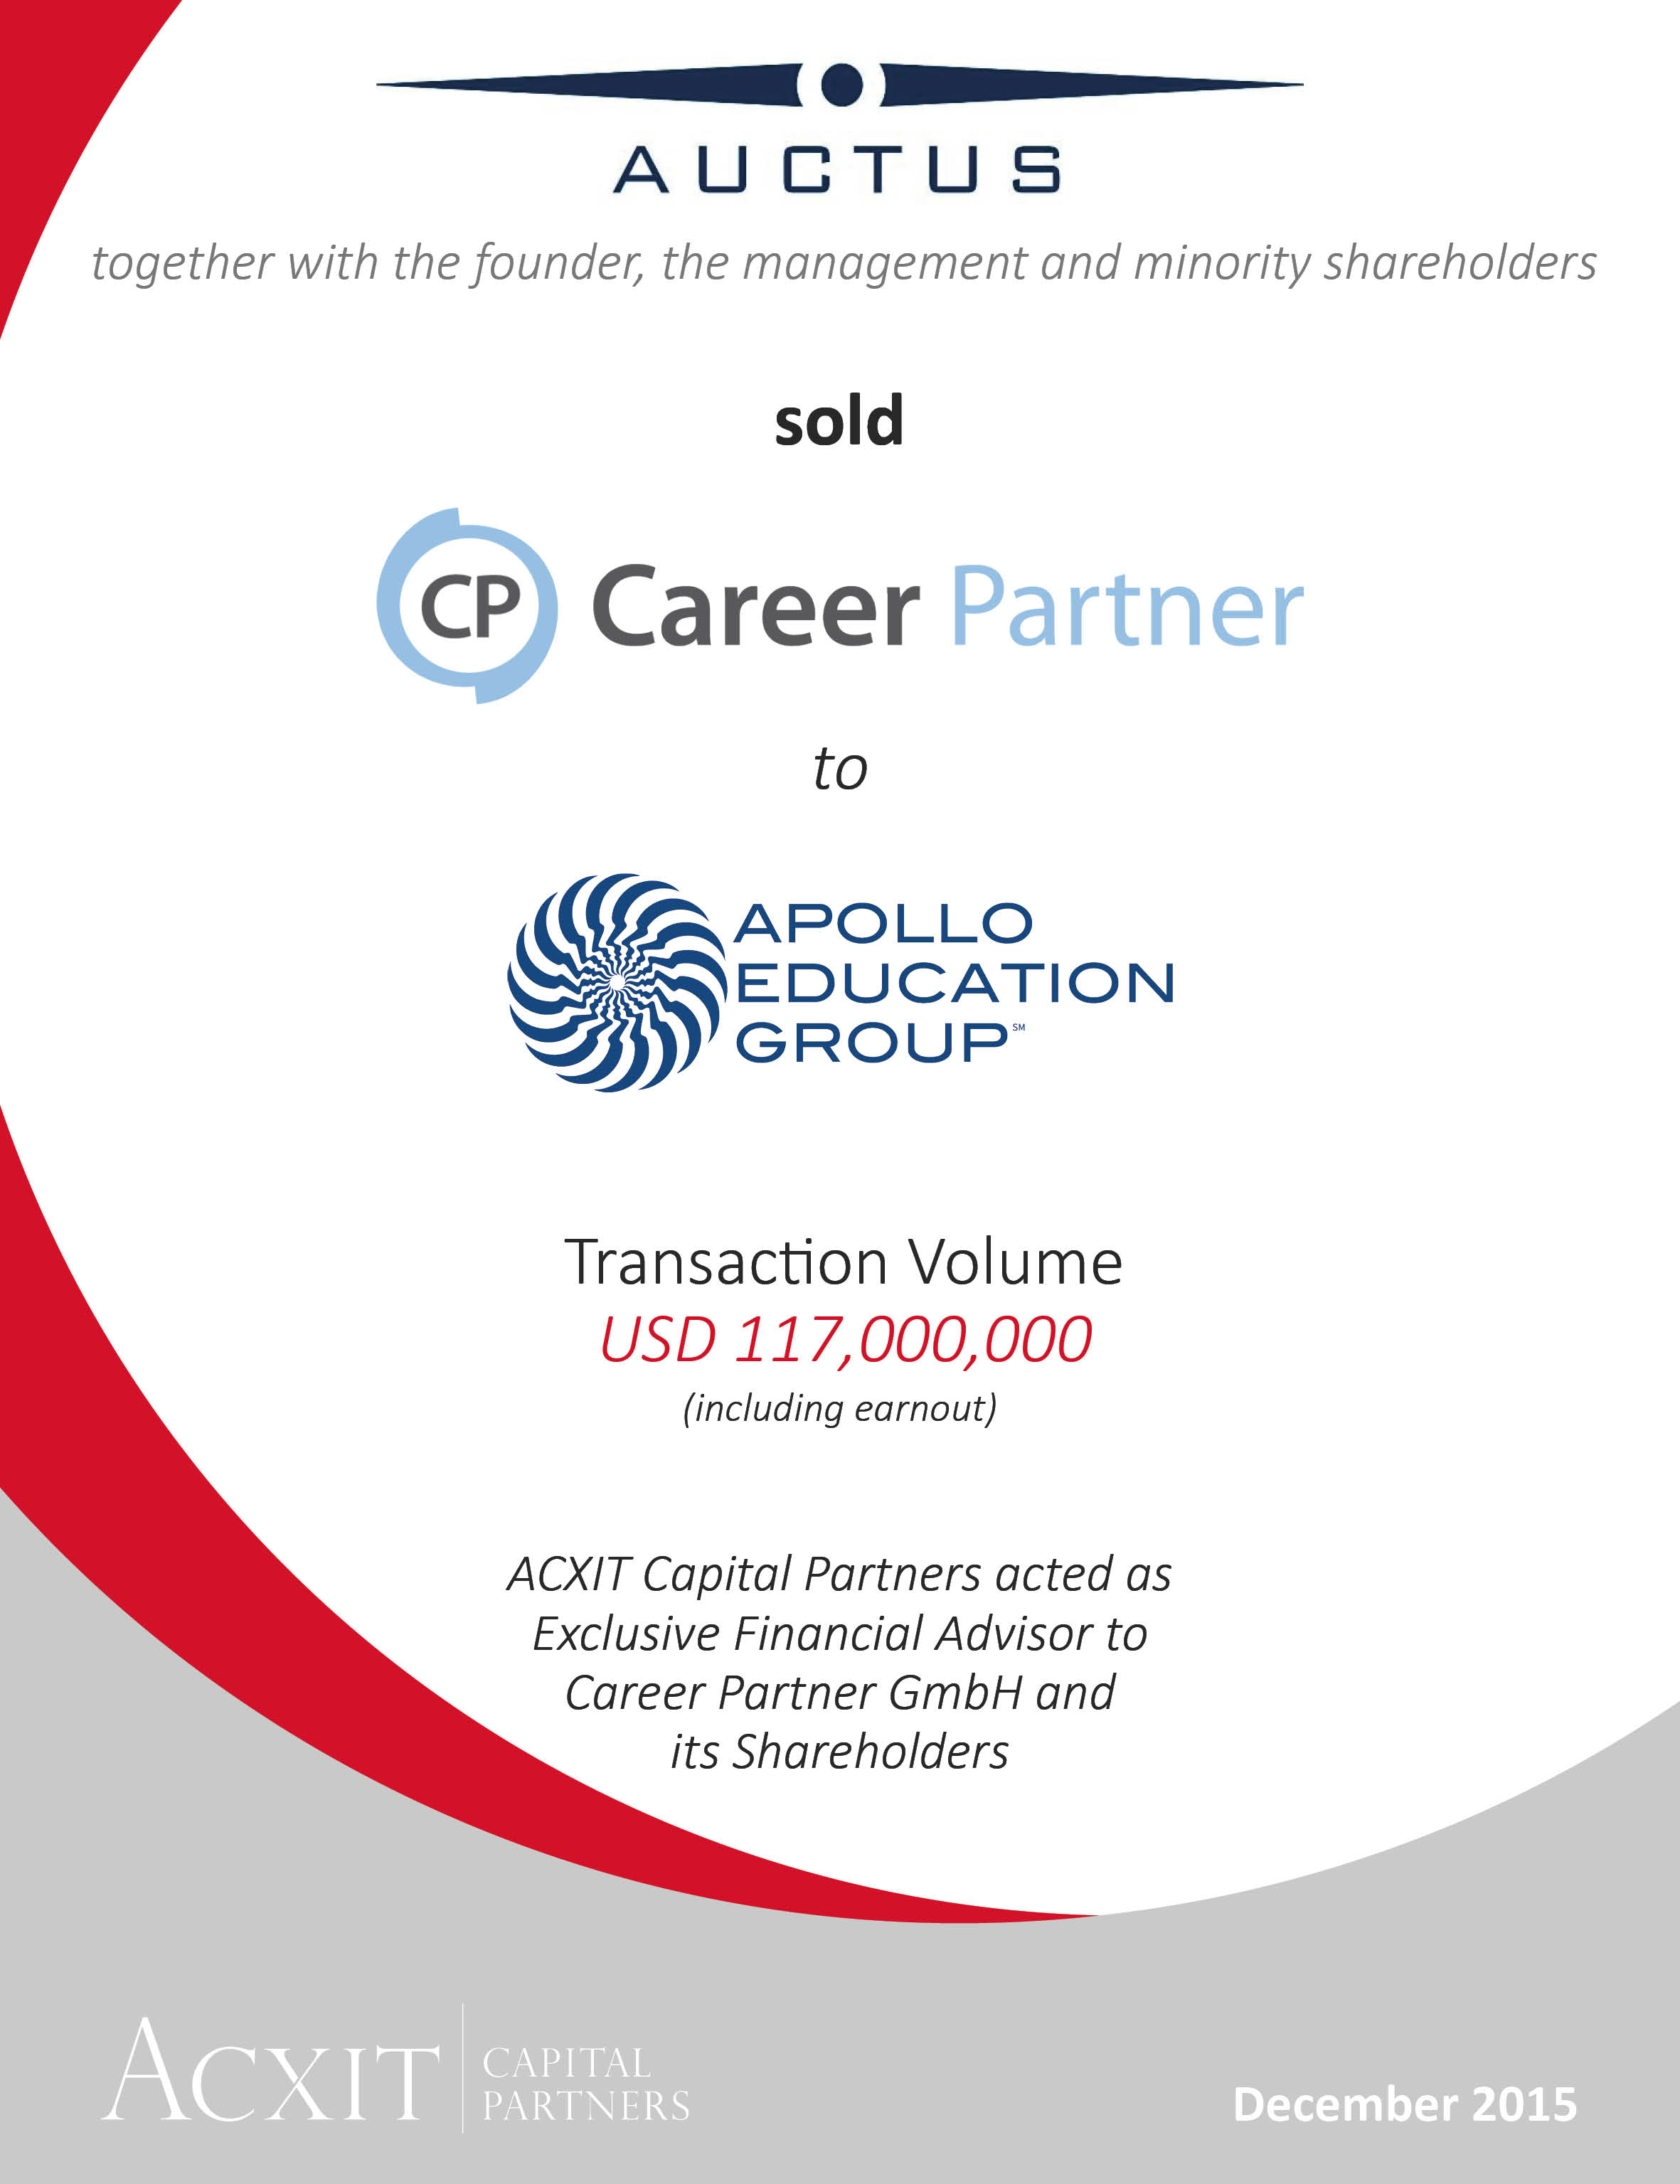 Trade Sale of Career Partner to Apollo Global